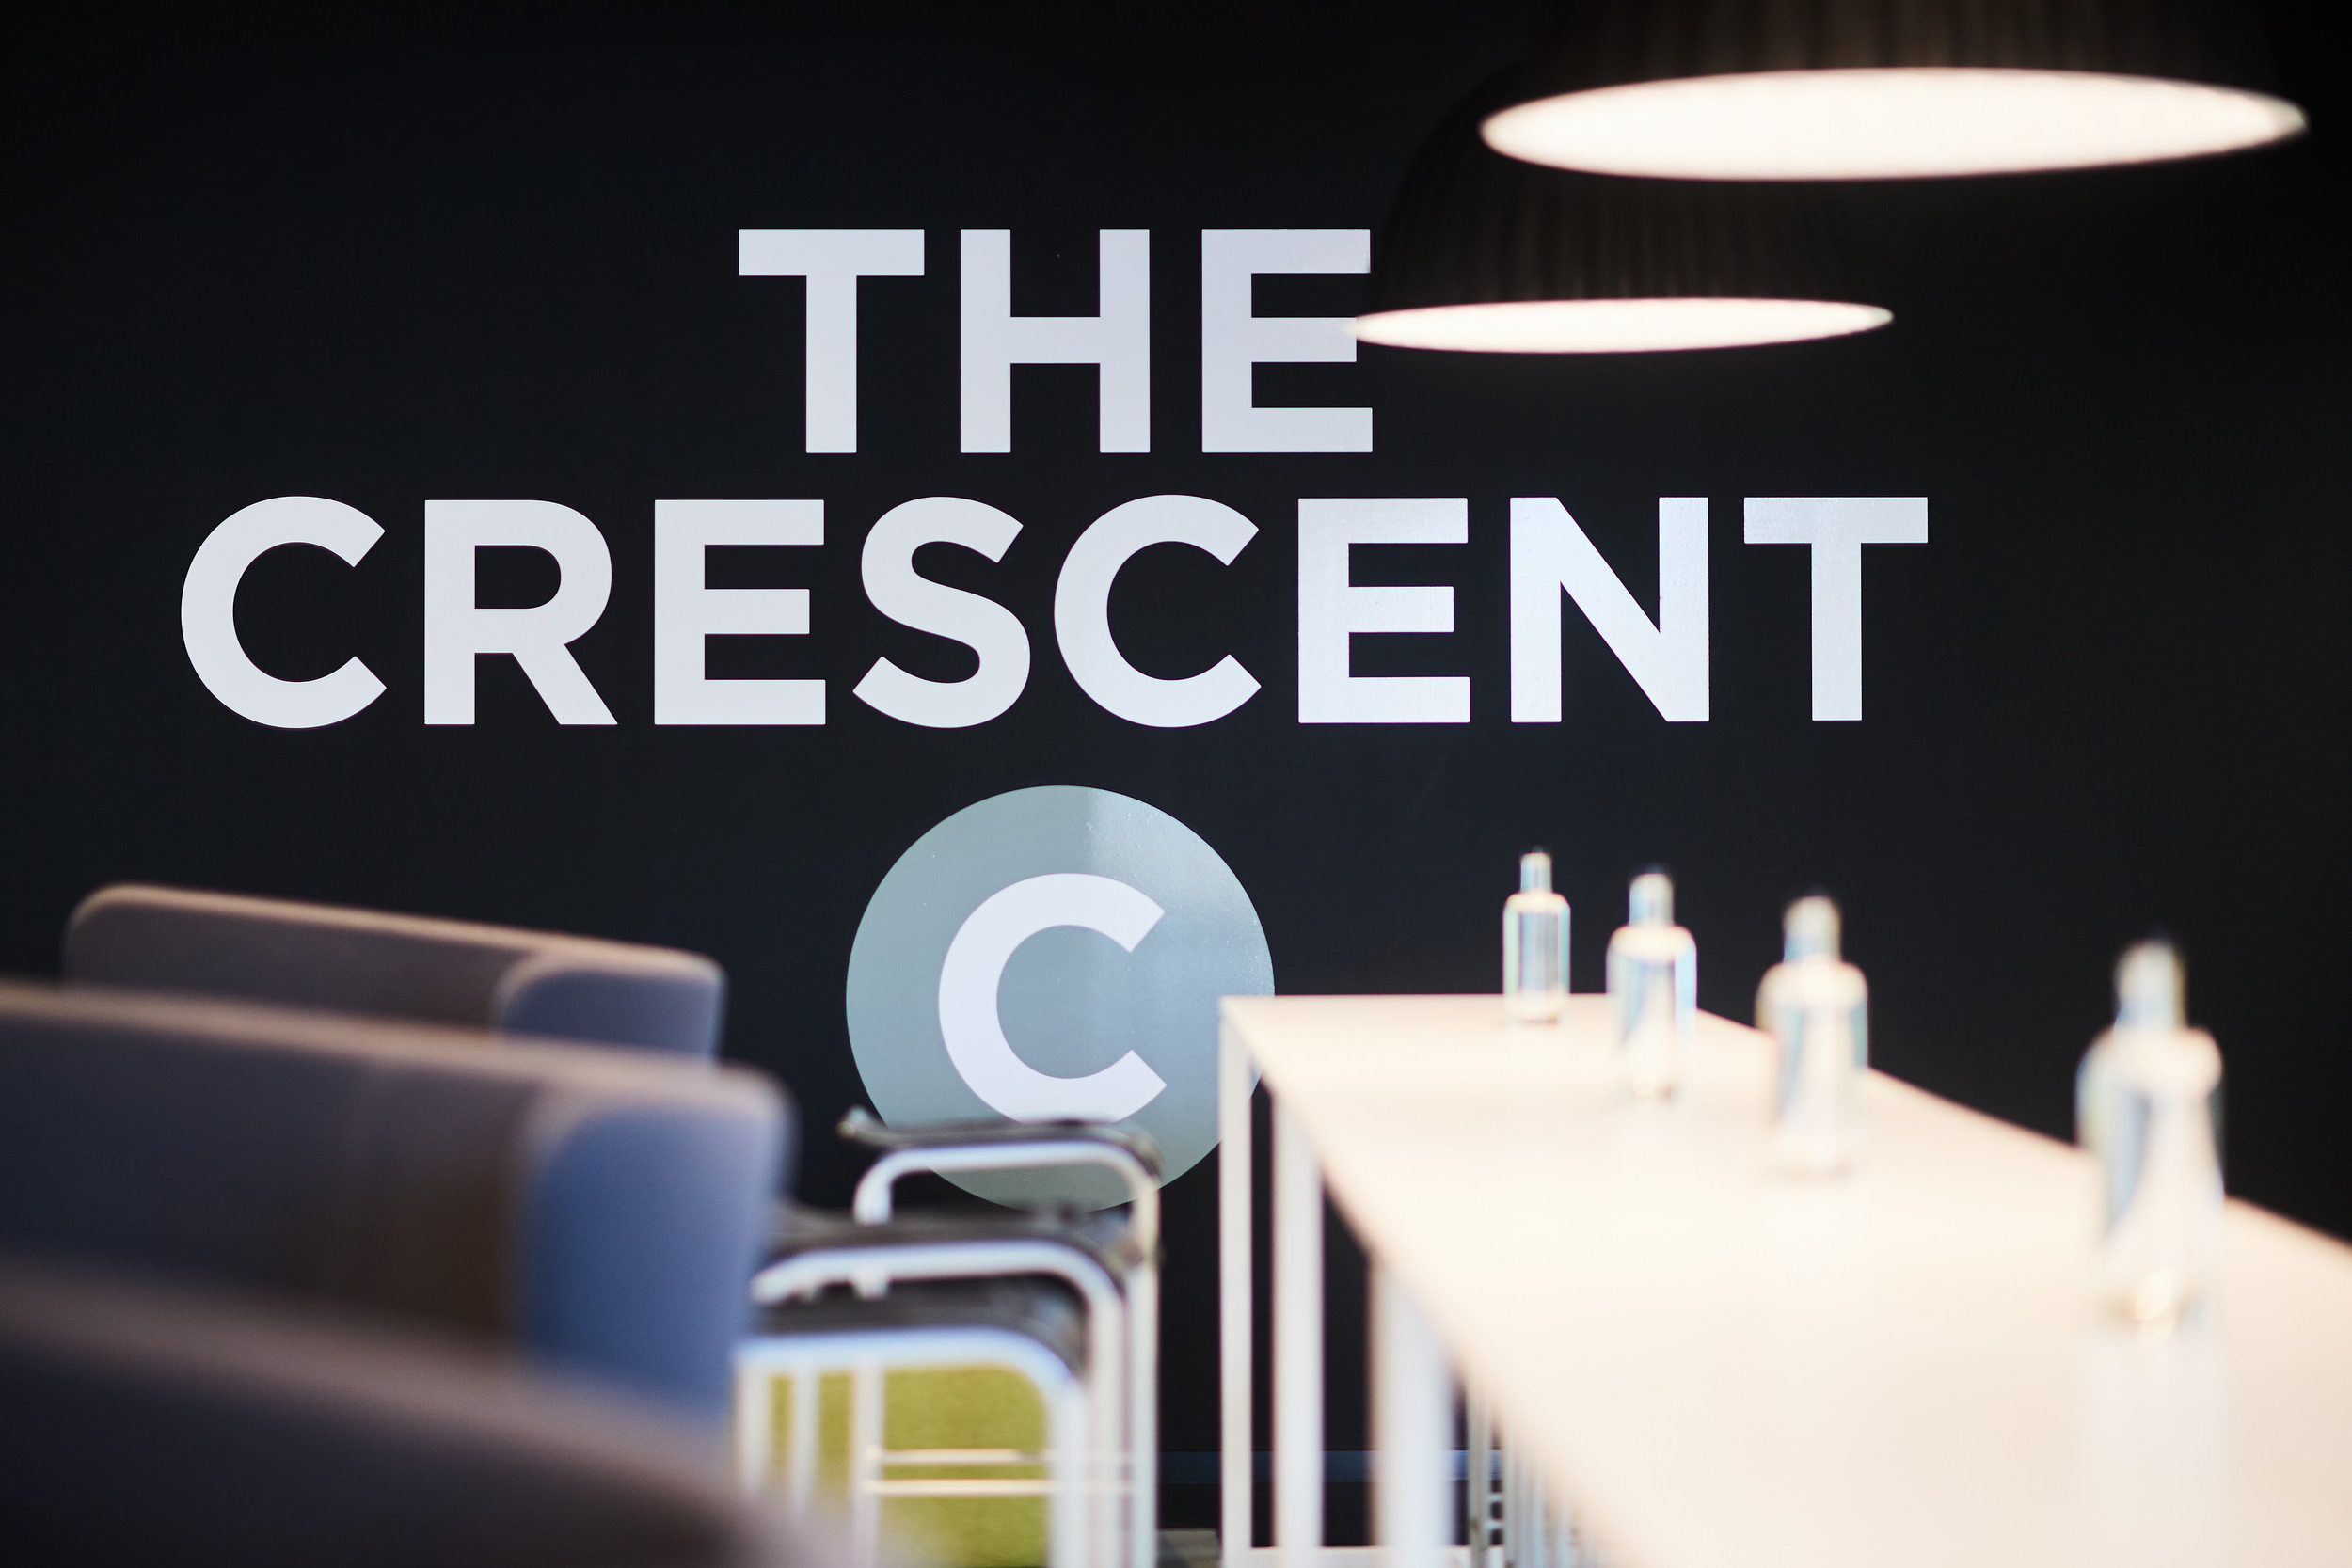 The Crescent - Your green business community